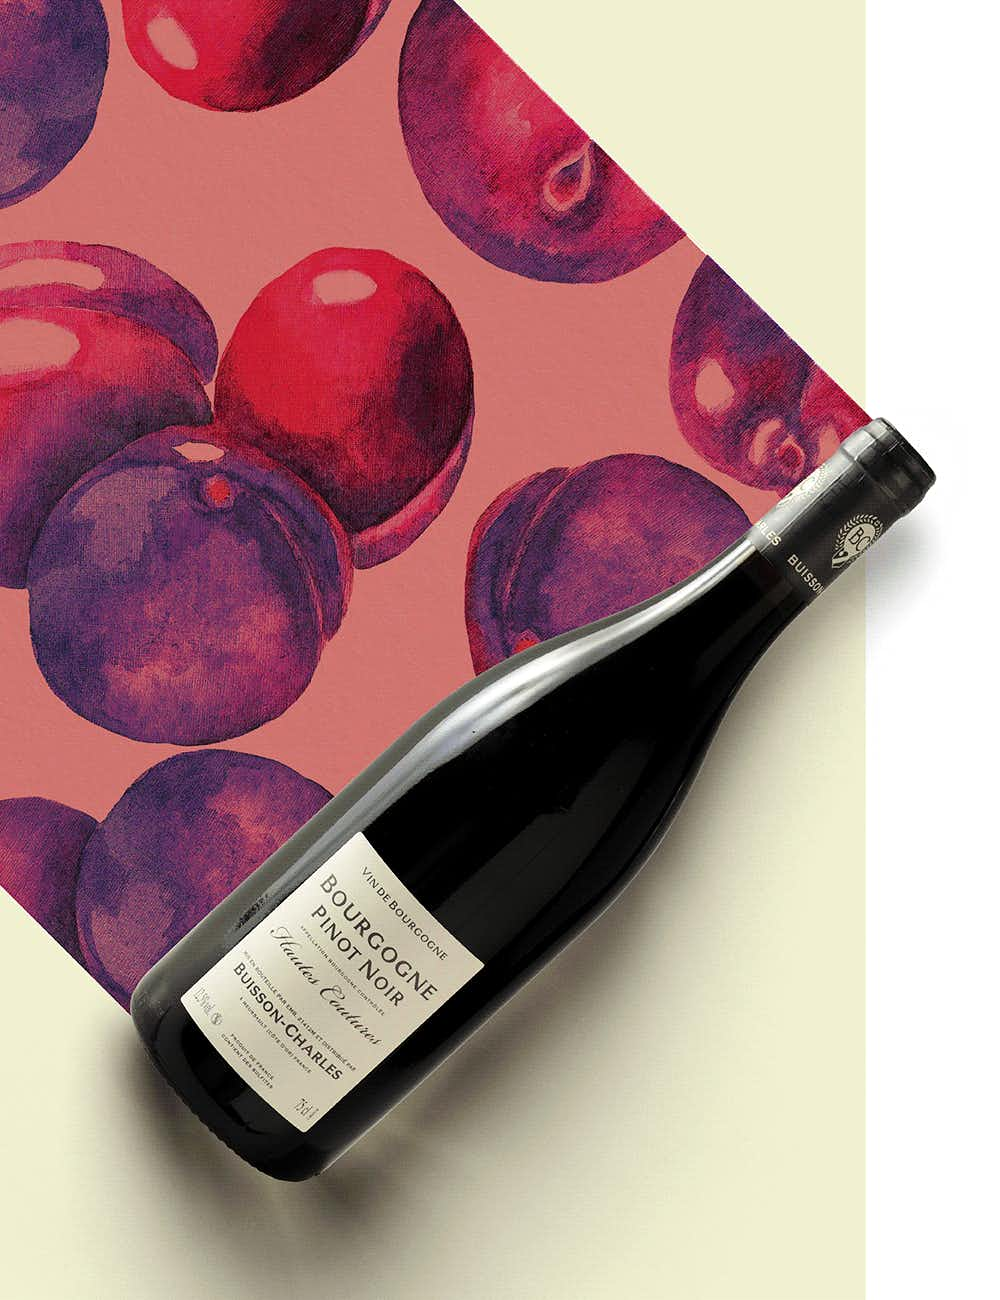 Buisson-Charles Bourgogne Pinot Noir Hautes Coutures 2017